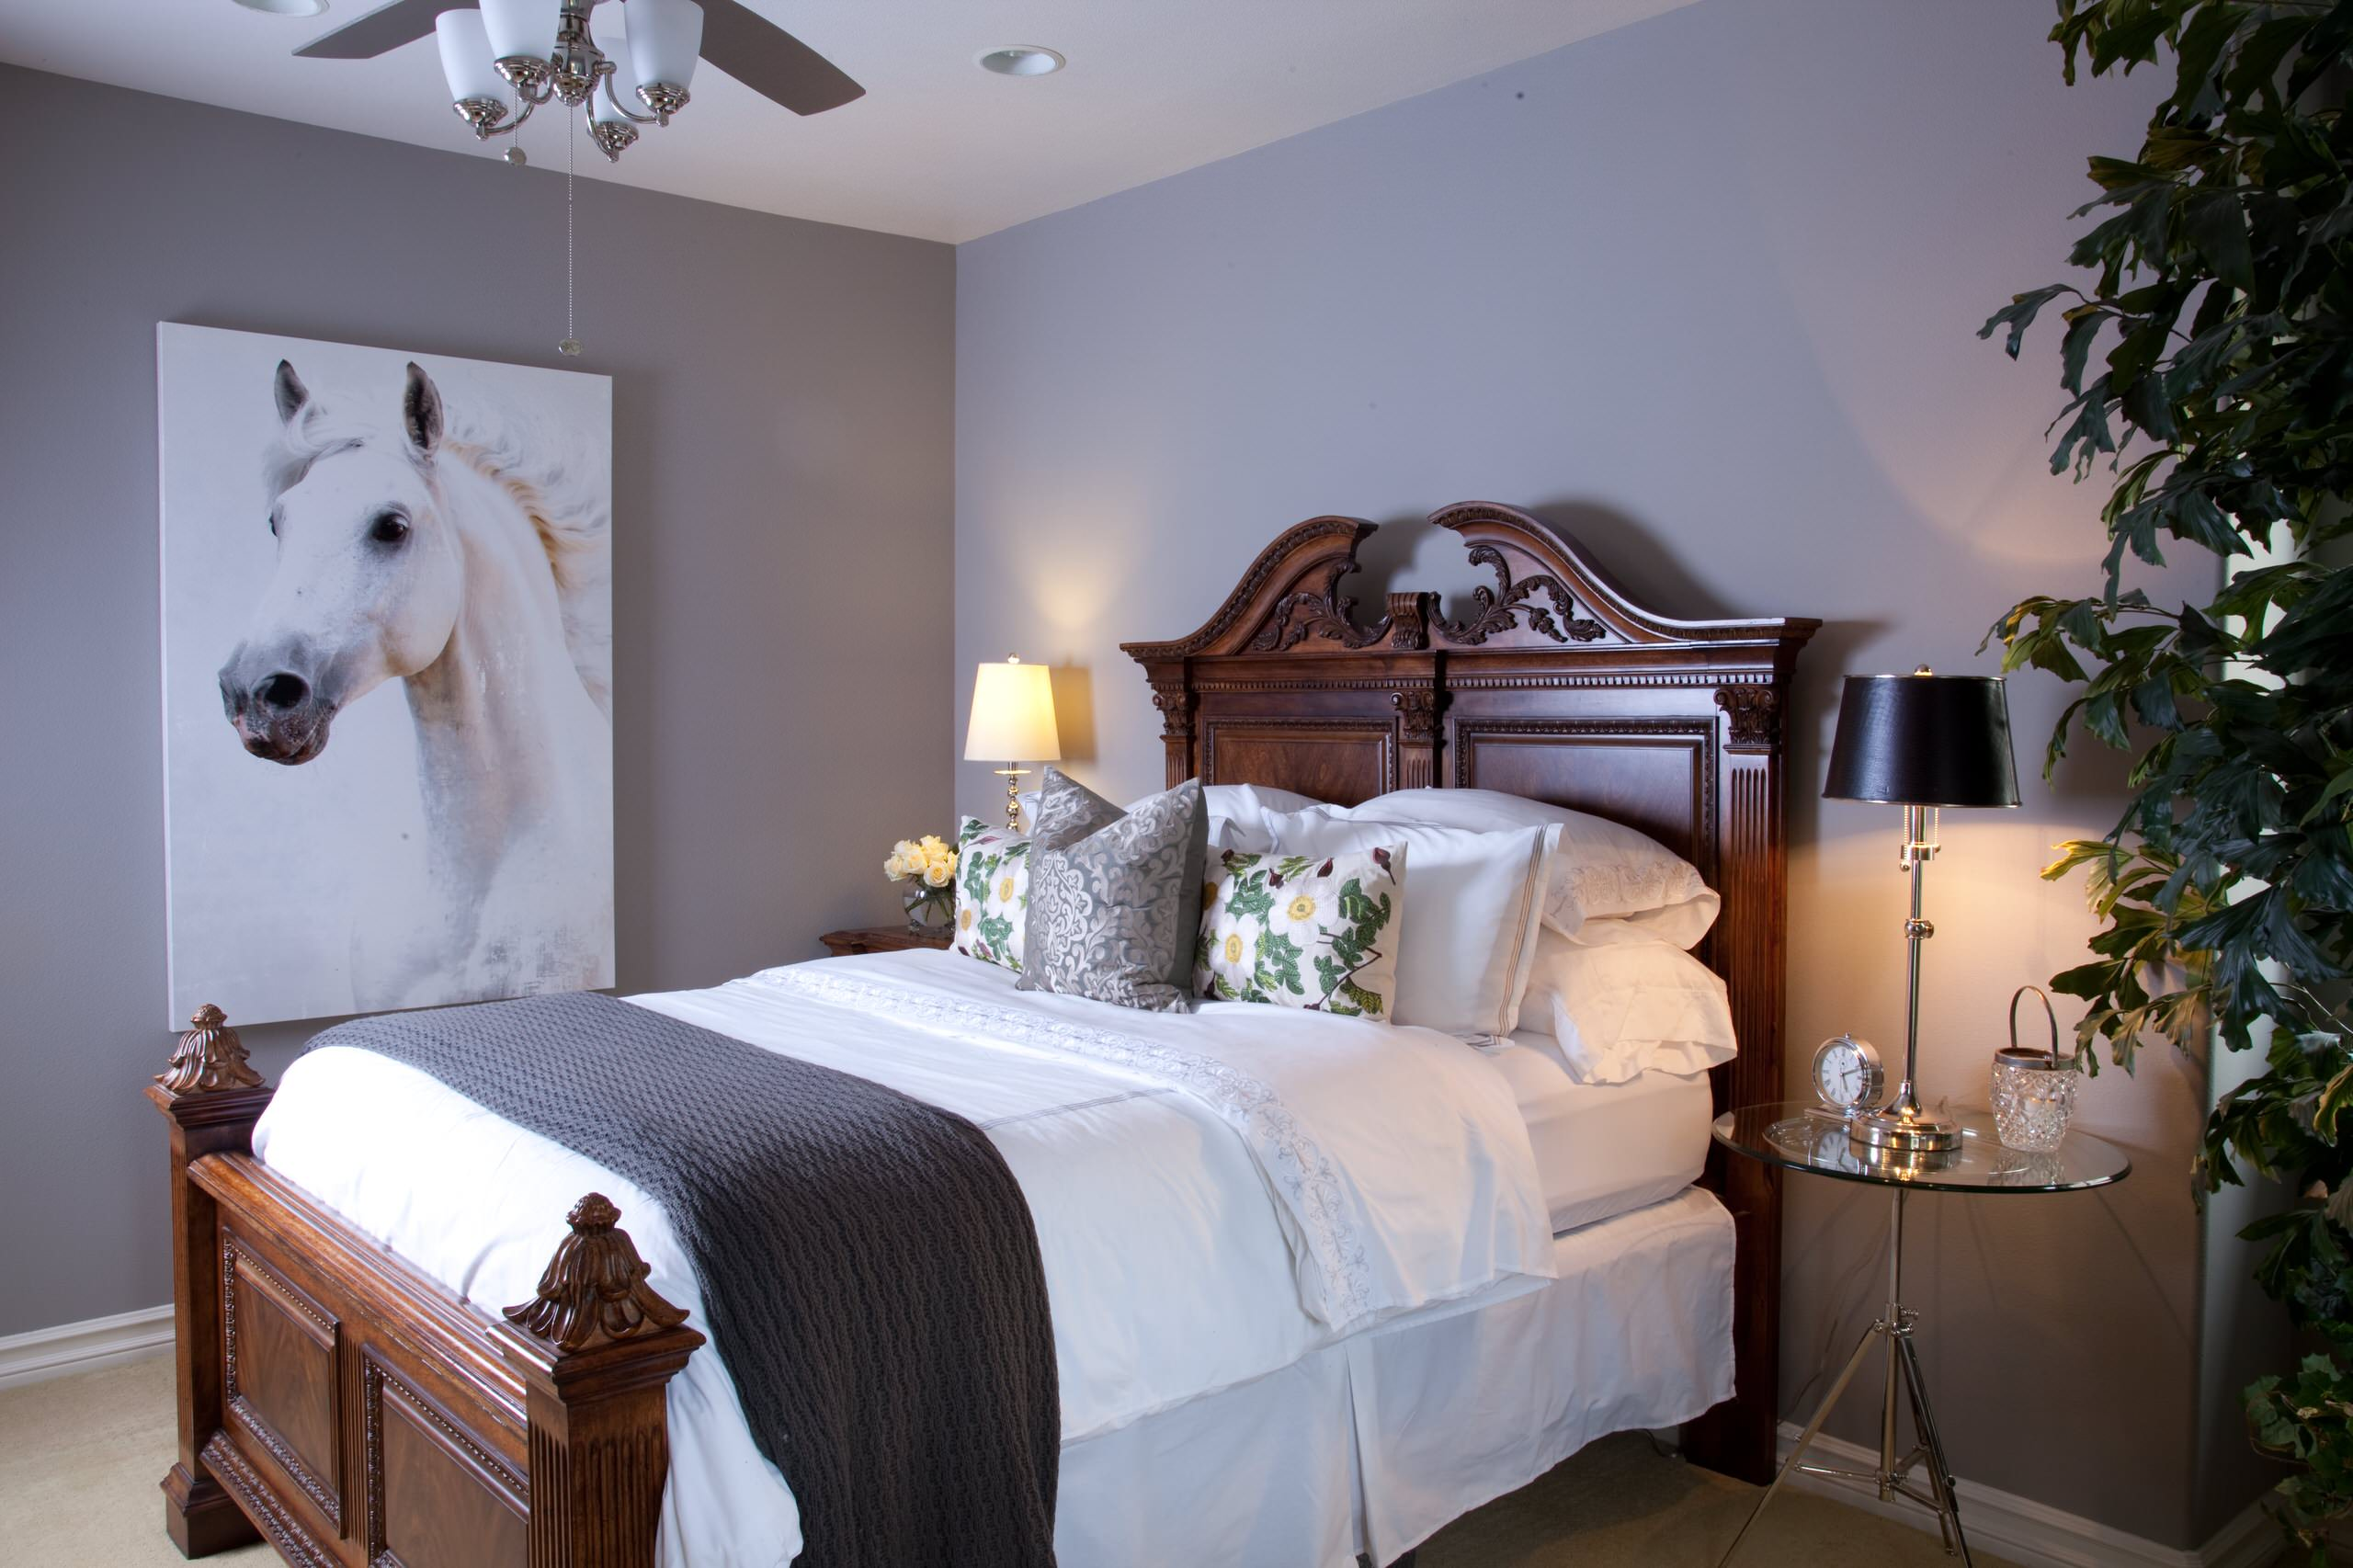 Equestrian Guest Suite for Vicki Gunvalson of the RHOC